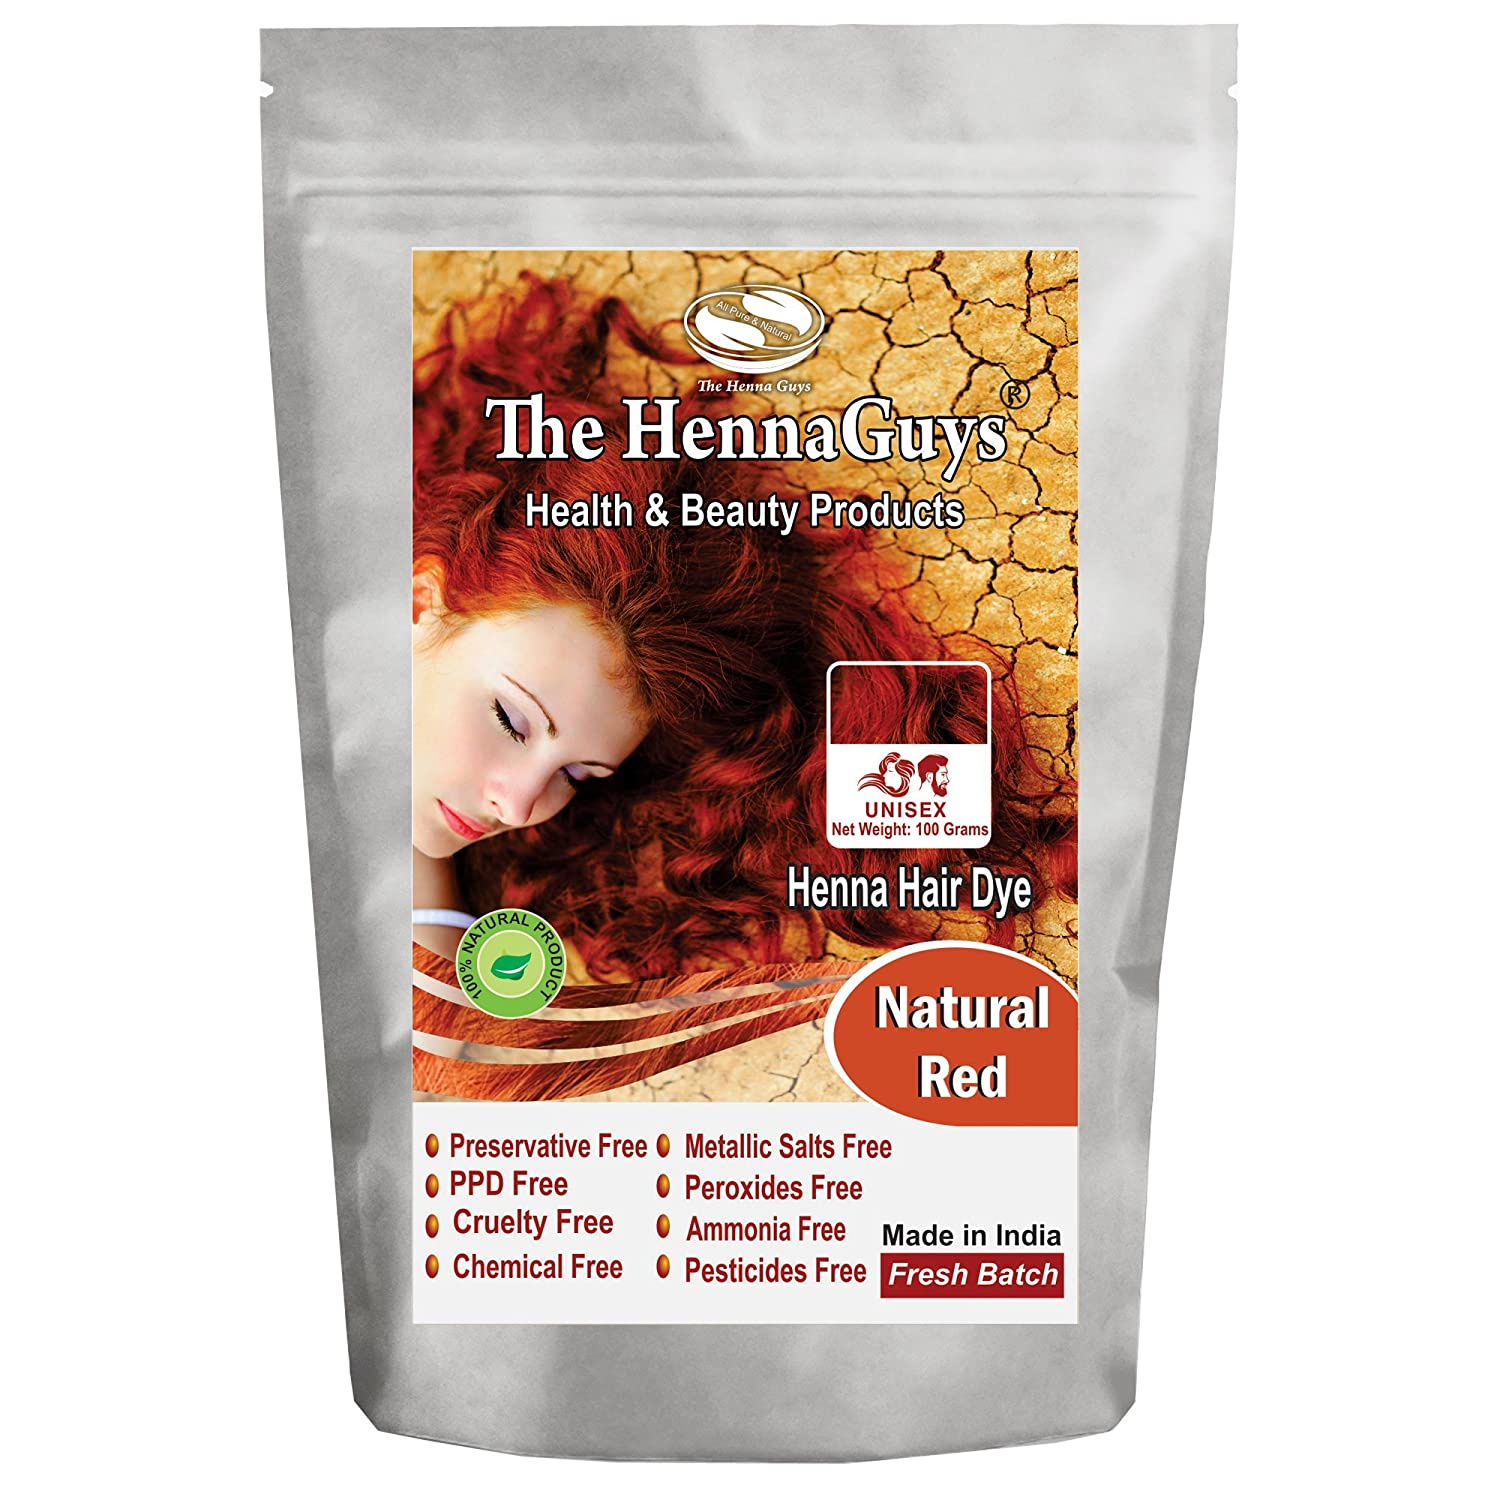 Amazon.com : Natural Red Henna Hair Color / Dye 100 Grams - The ...